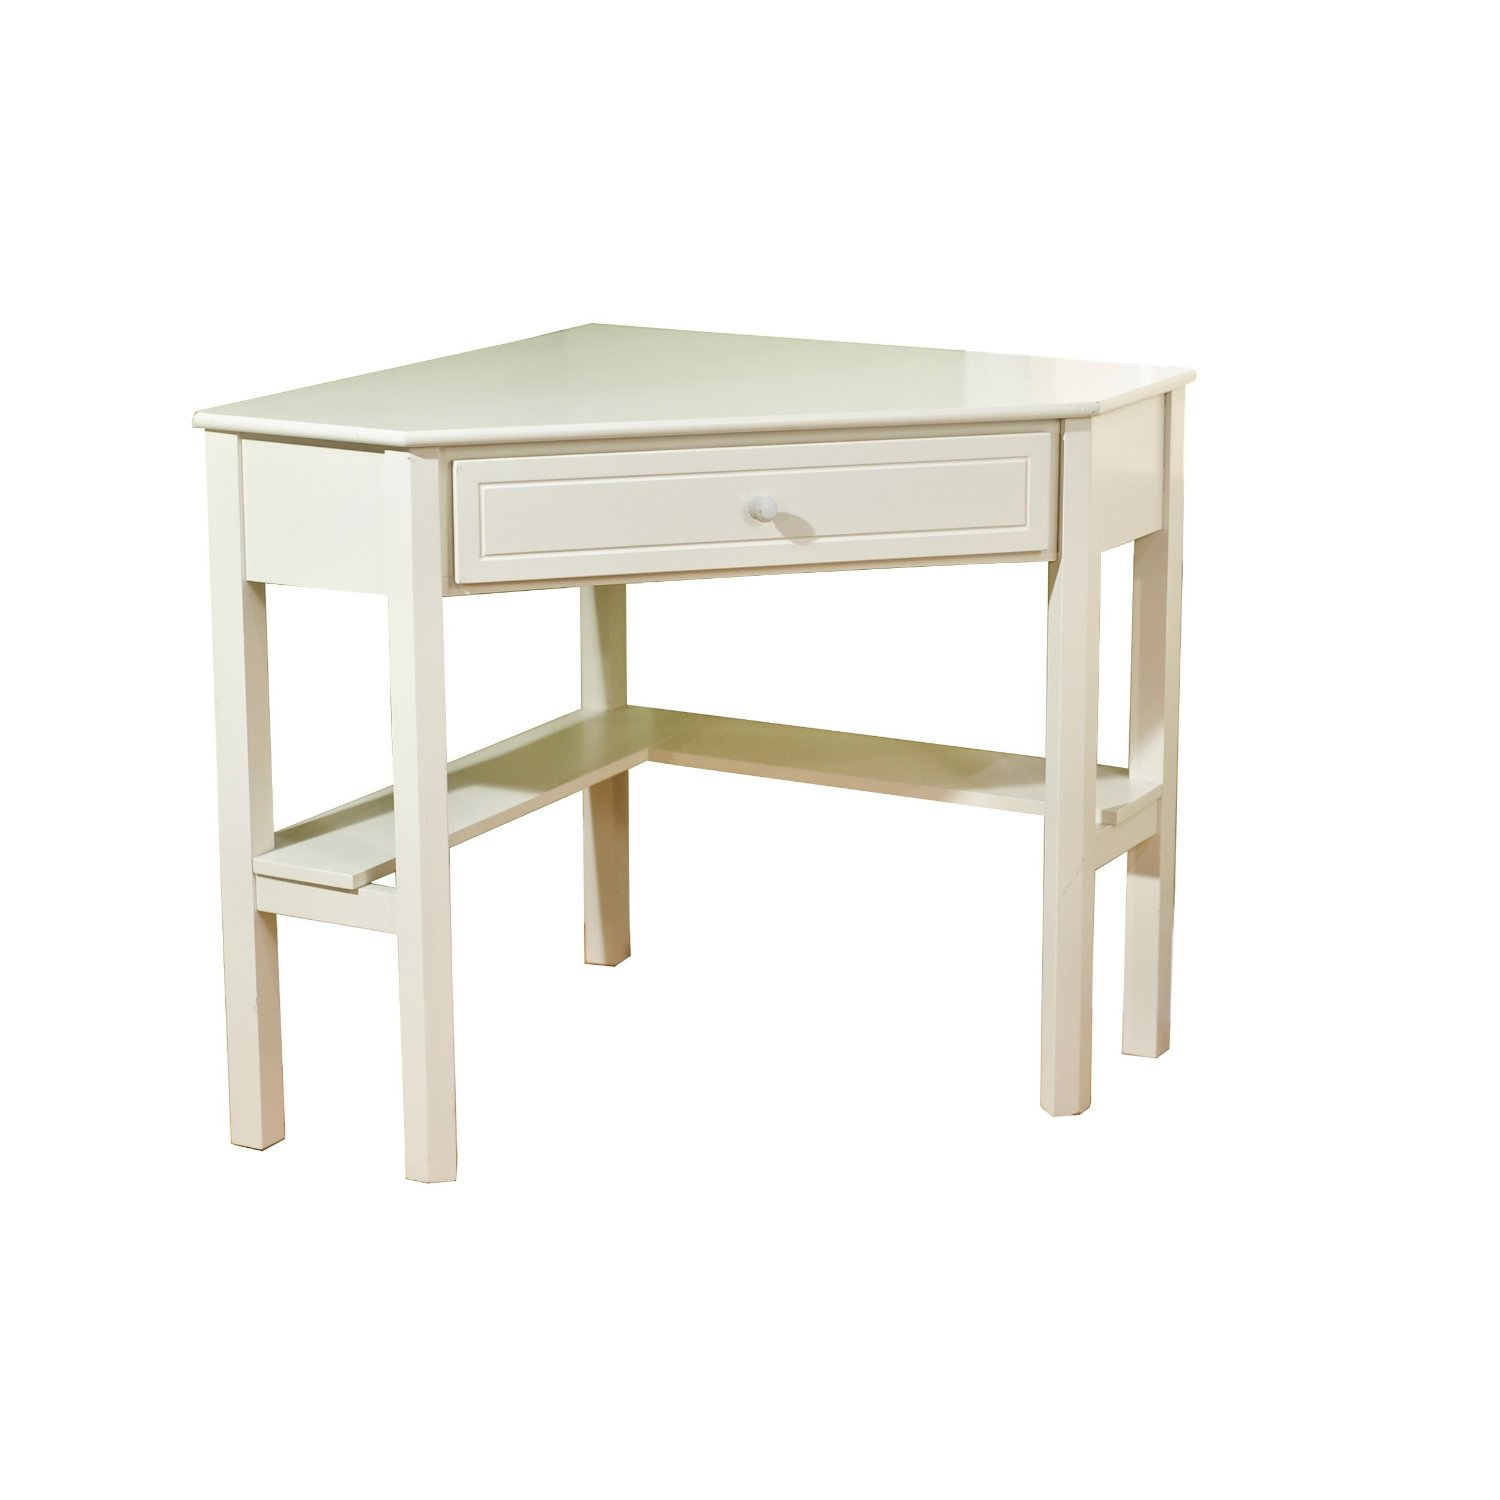 White Corner Desk: White Wood Corner Desk